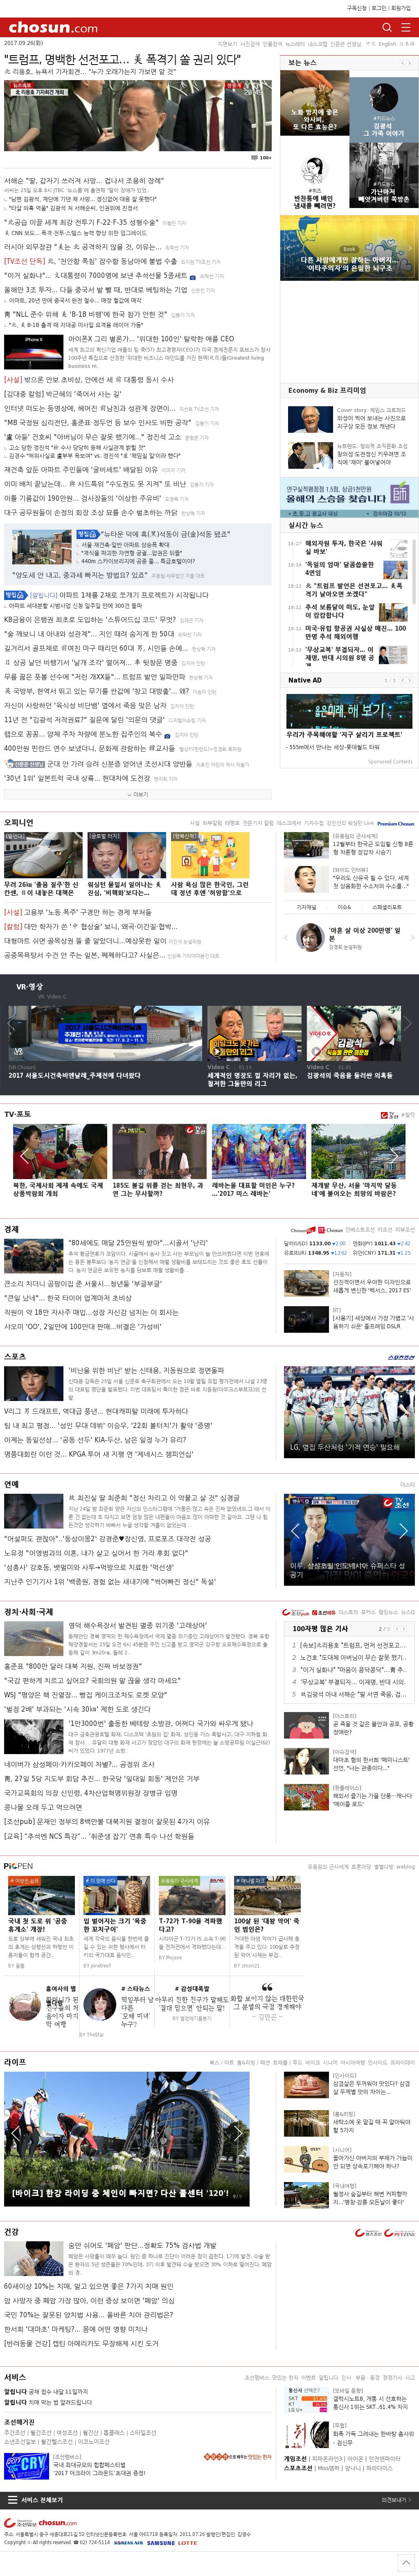 chosun.com at Monday Sept. 25, 2017, 9:11 p.m. UTC